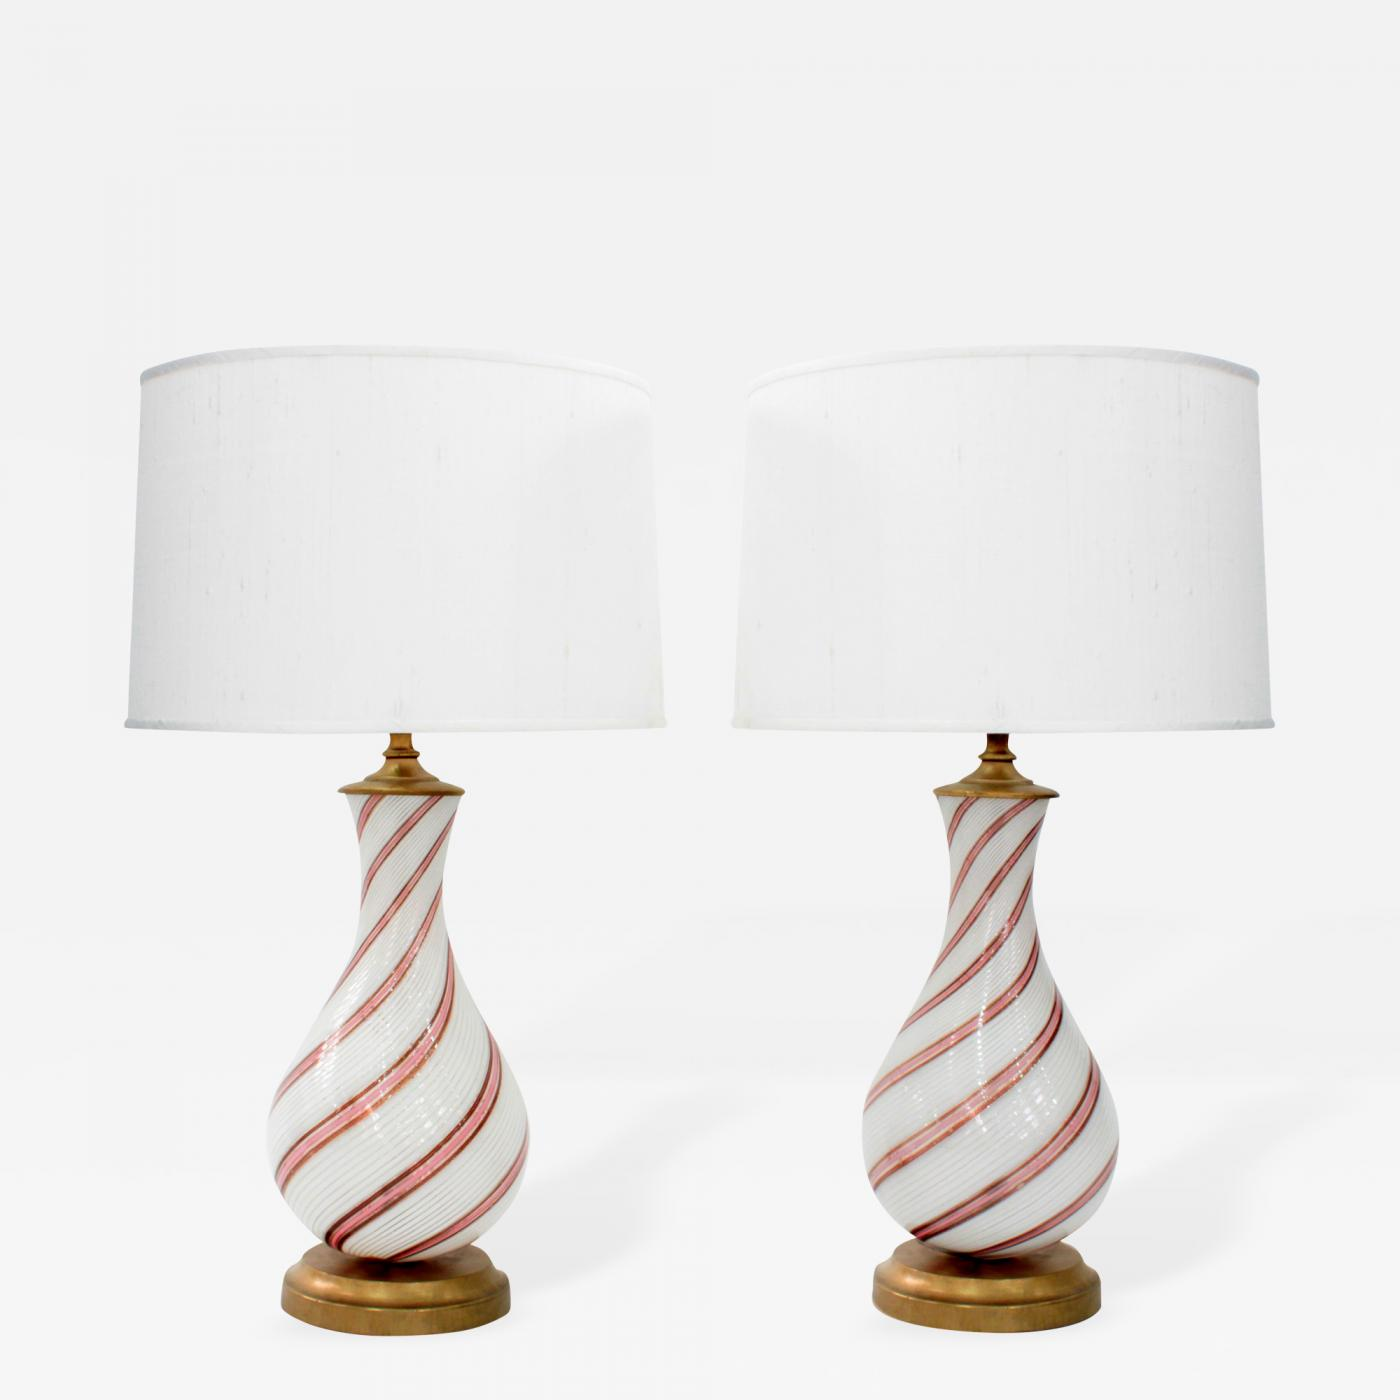 Dino martens pair of hand blown glass table lamps by dino martens listings furniture lighting table lamps dino martens pair of hand blown glass mozeypictures Images